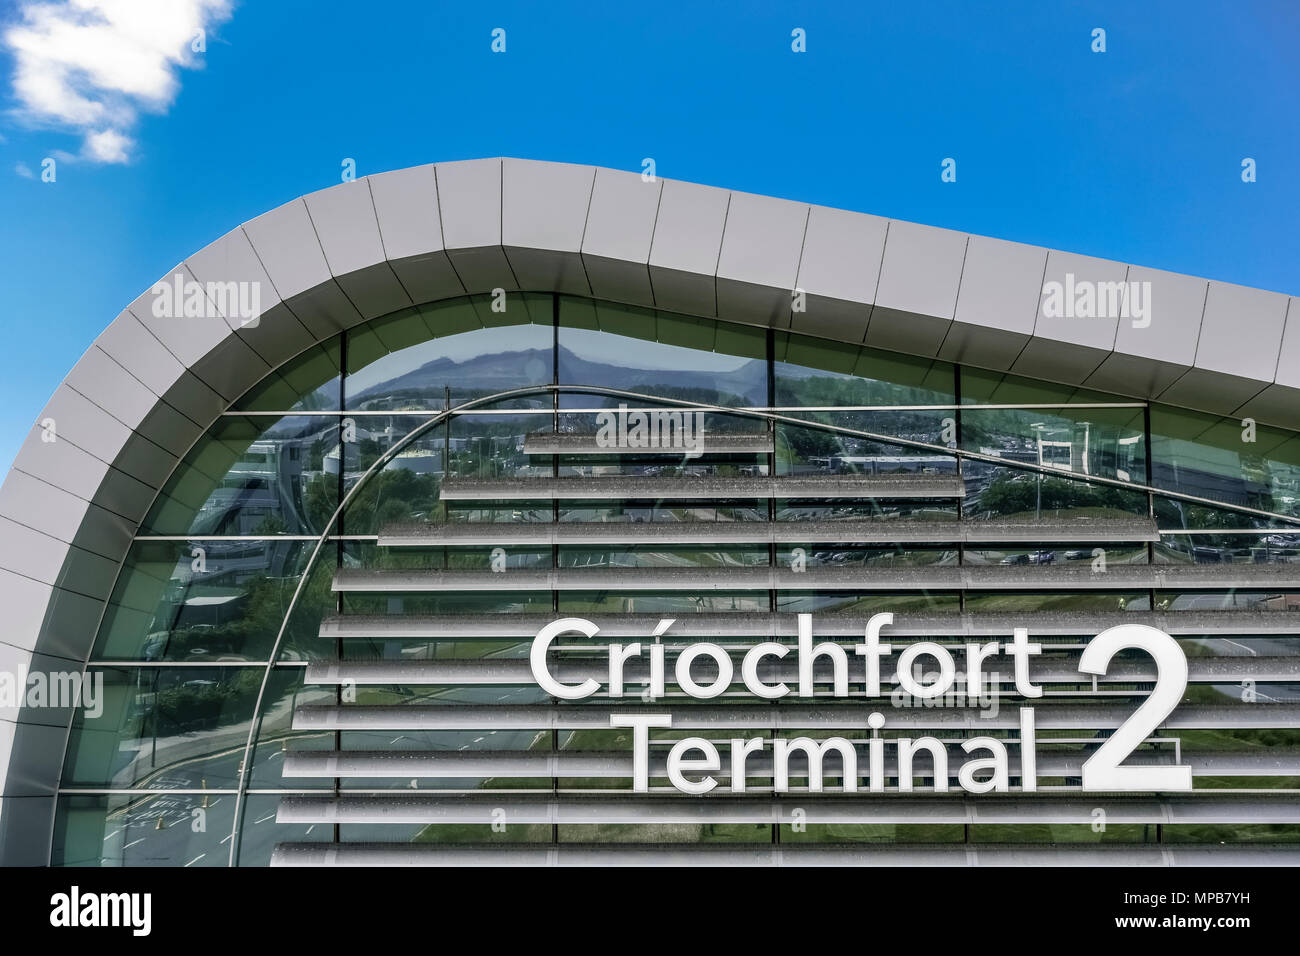 New Terminal 2, T2 Criochfort Dublin Interenational Airport, by architects Pascall & Watson. Blue sky, copy space, close up. Ireland, European Union Stock Photo